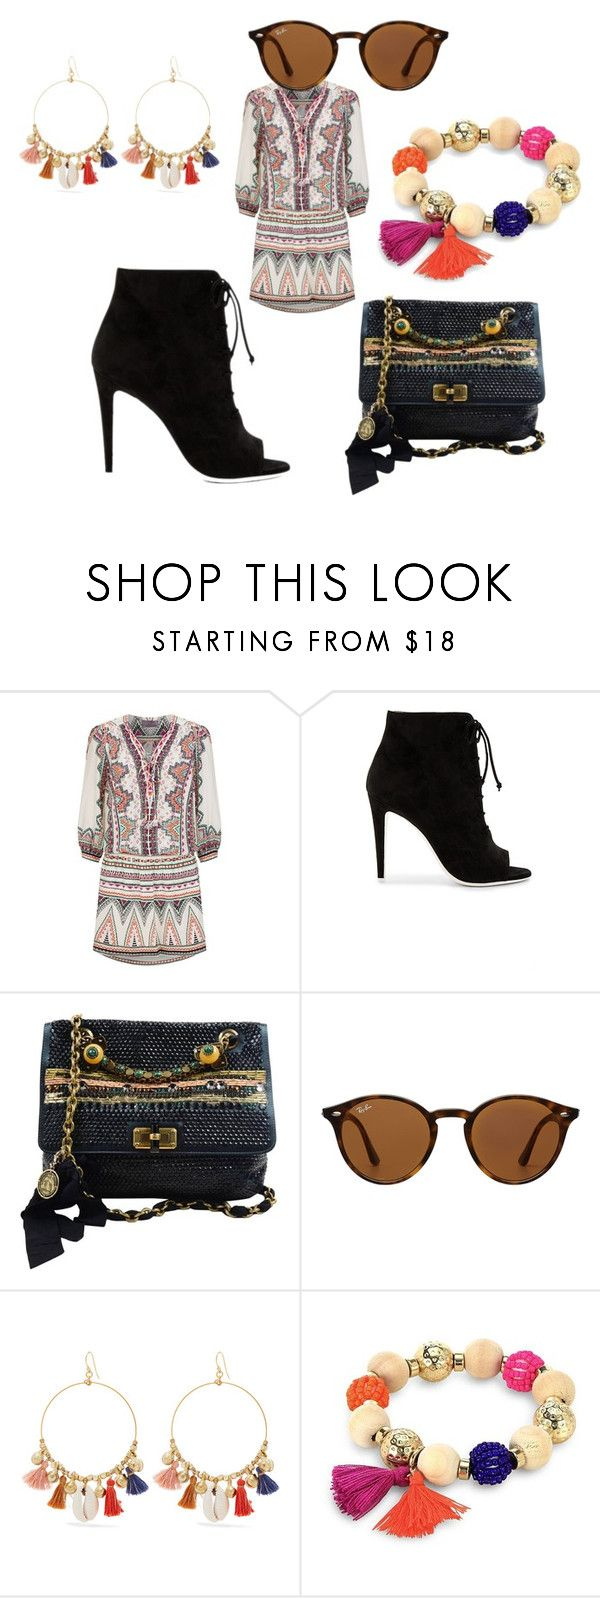 """""""Untitled #6950"""" by bellagioia ❤ liked on Polyvore featuring Hale Bob, Off-White, Lanvin, Ray-Ban, Chan Luu and Robert Rose"""